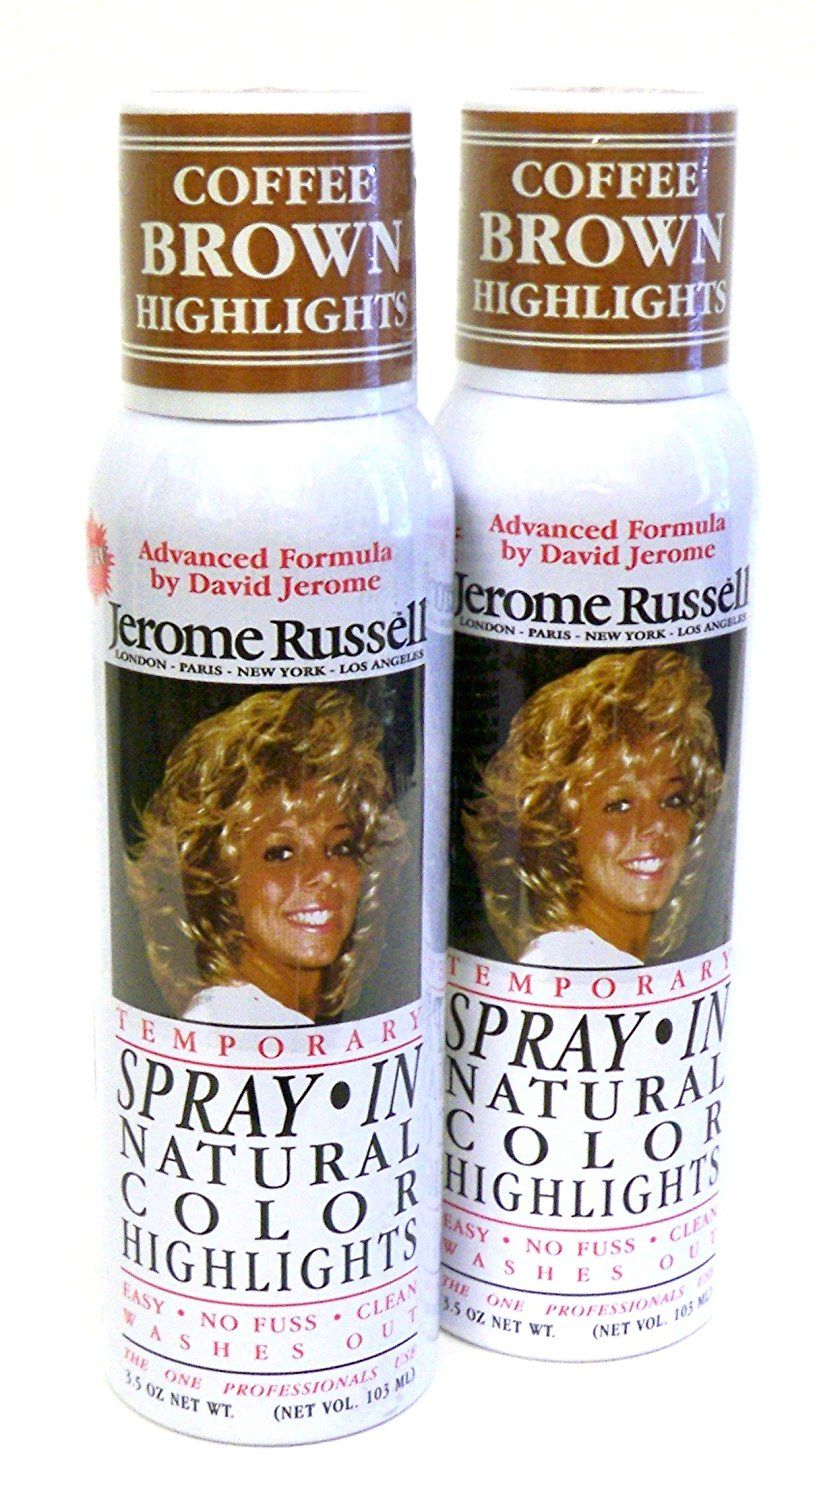 Jerome Russell Hair Color Sprays Natural Color Highlights 35 Oz